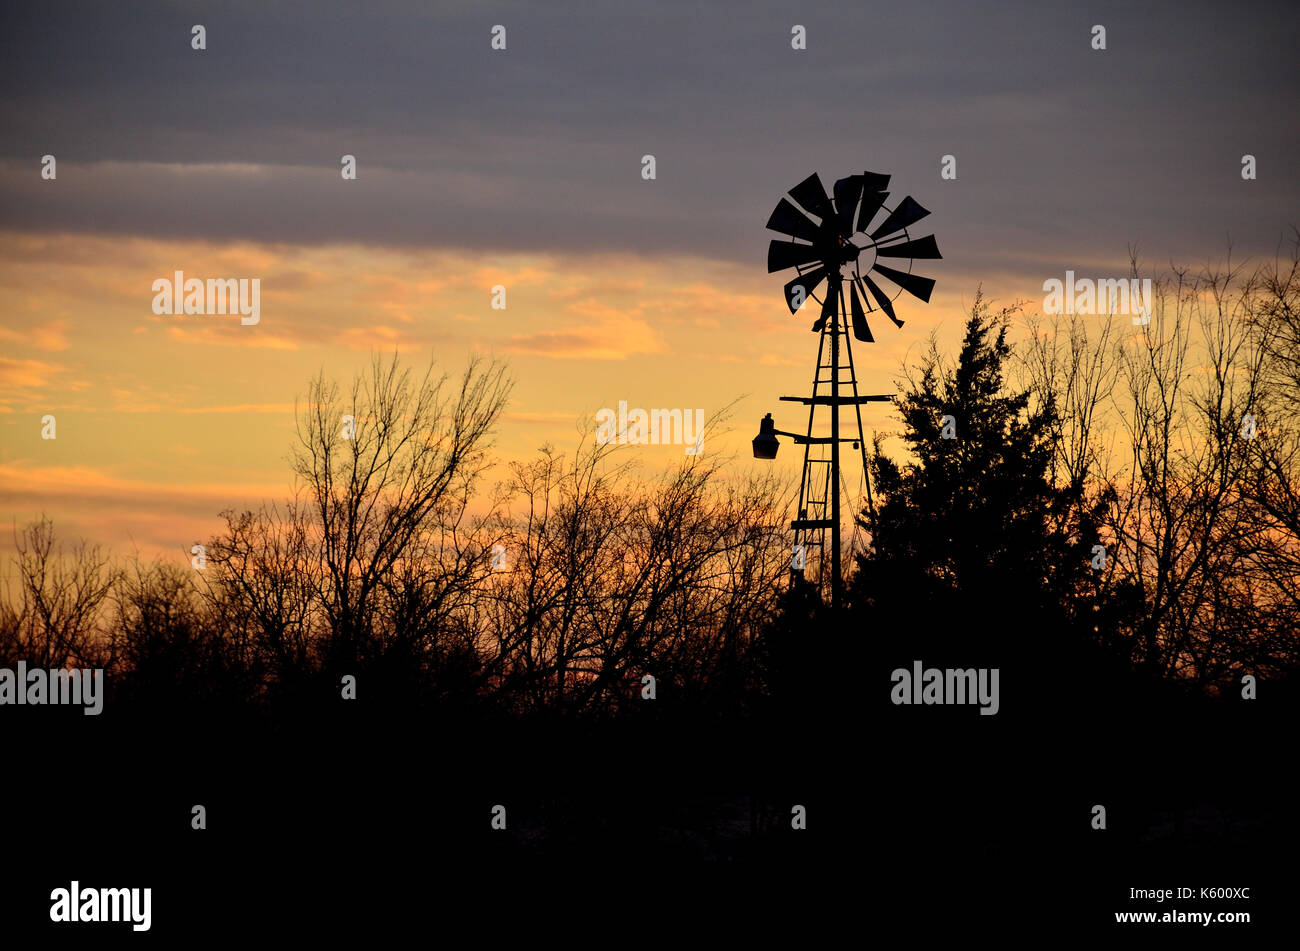 Old farm windmill in silhouette against an Oklahoma sky at sunset. - Stock Image